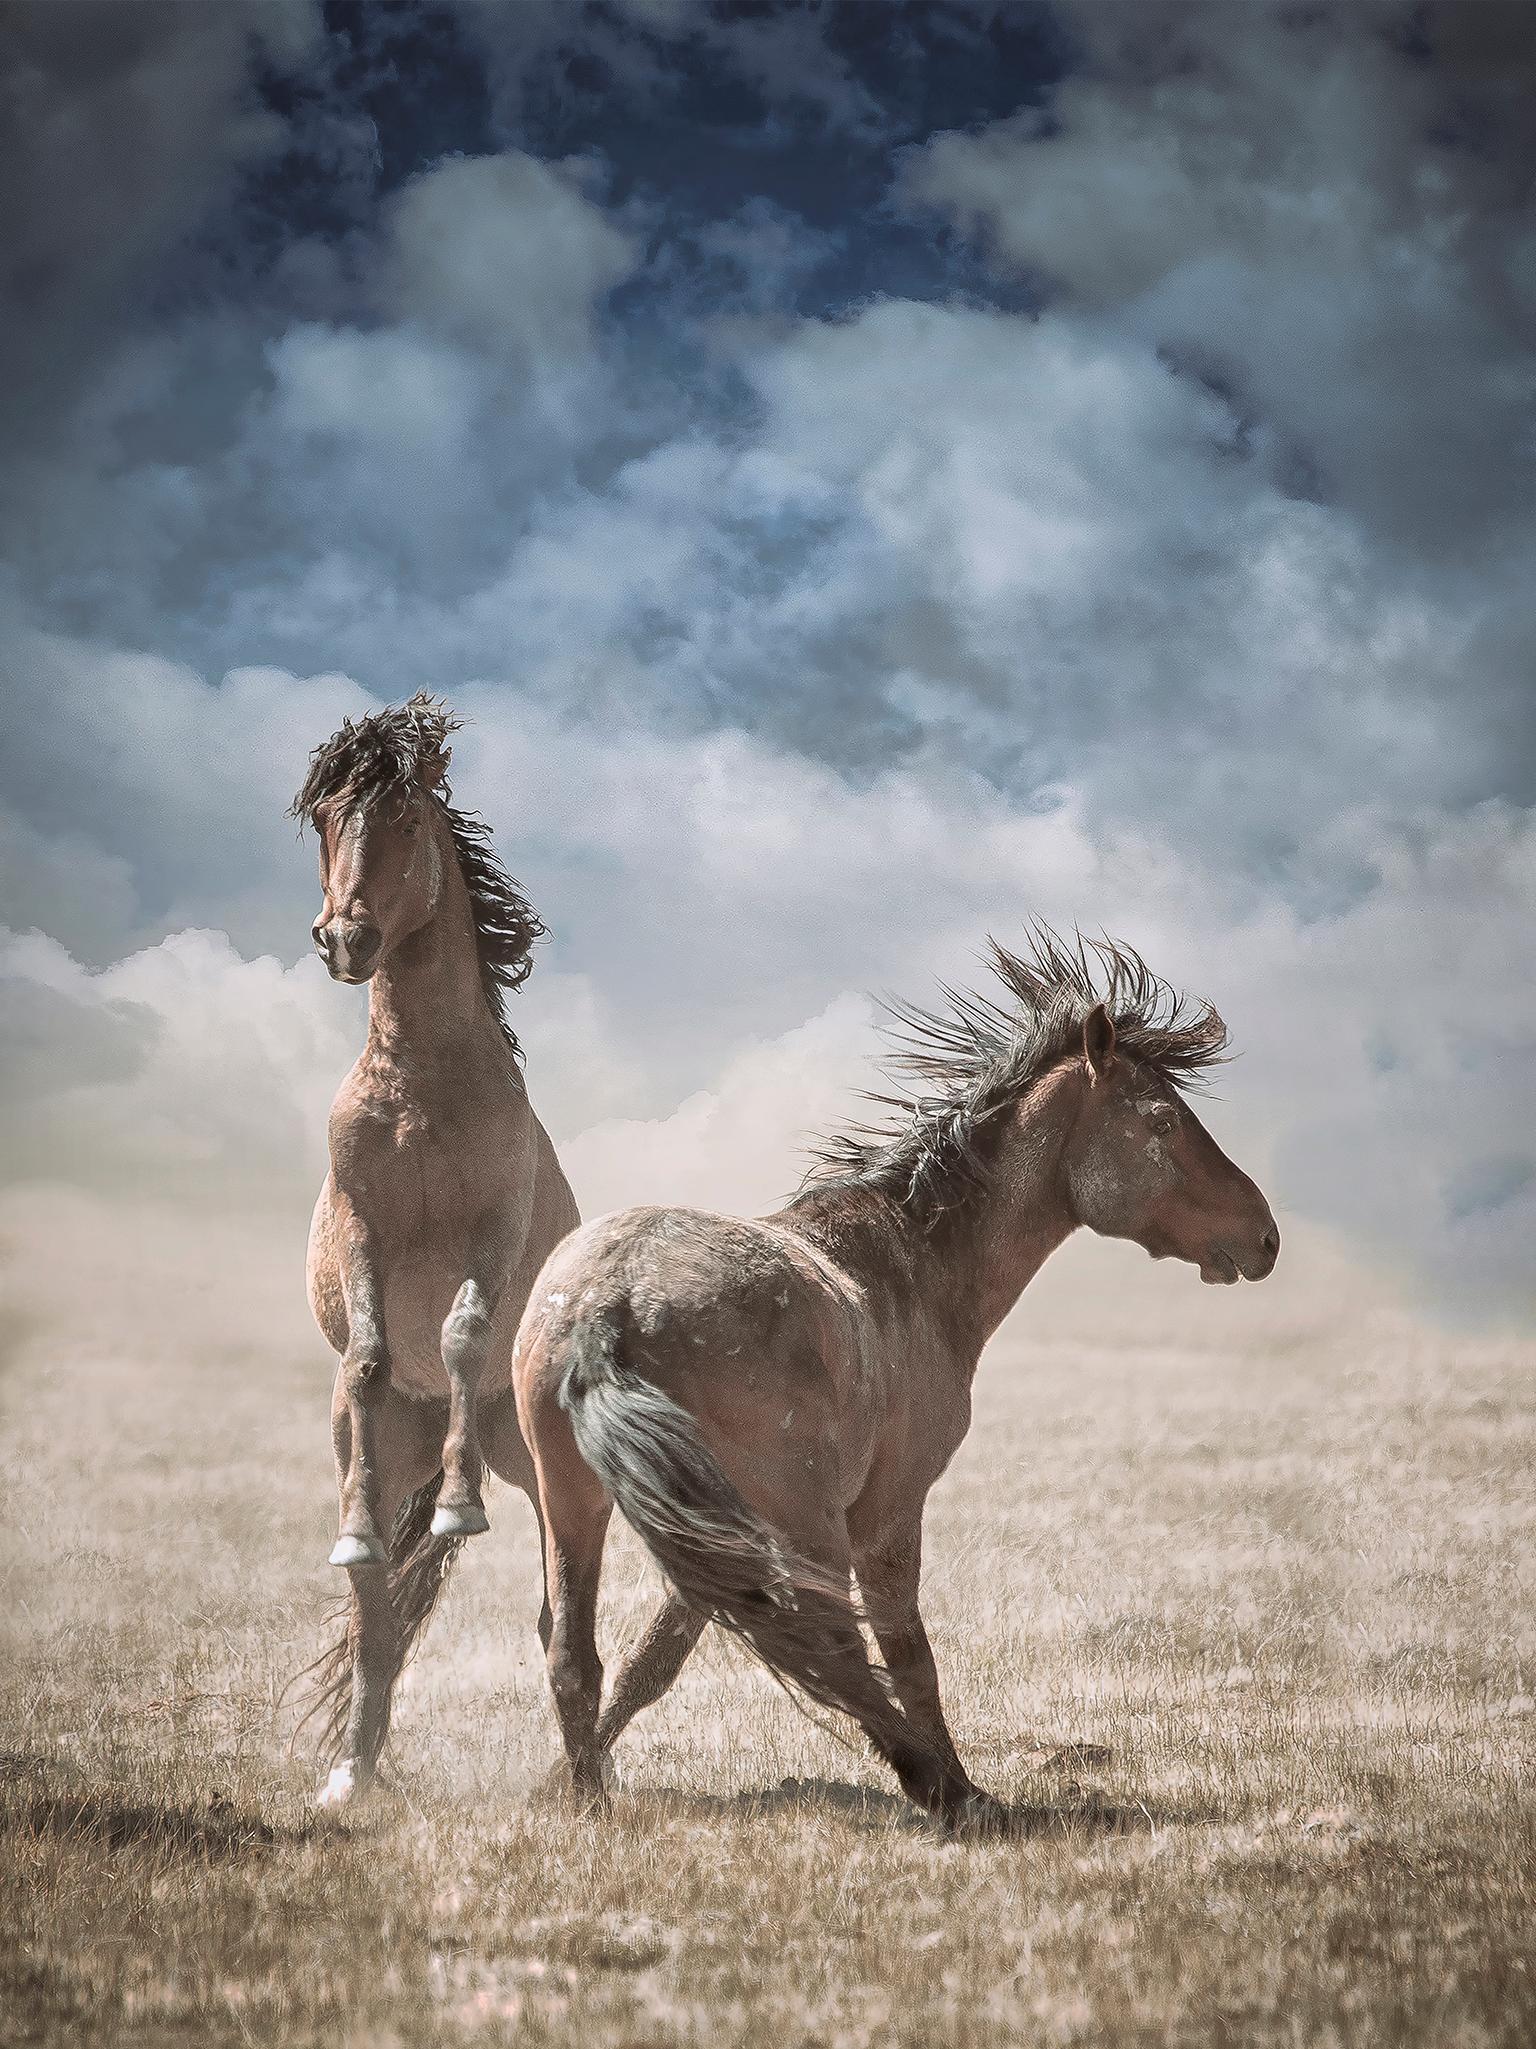 Shane Russeck Wonder Horses 20 X 24 Wild Horses Wild Mustang Photography For Sale At 1stdibs